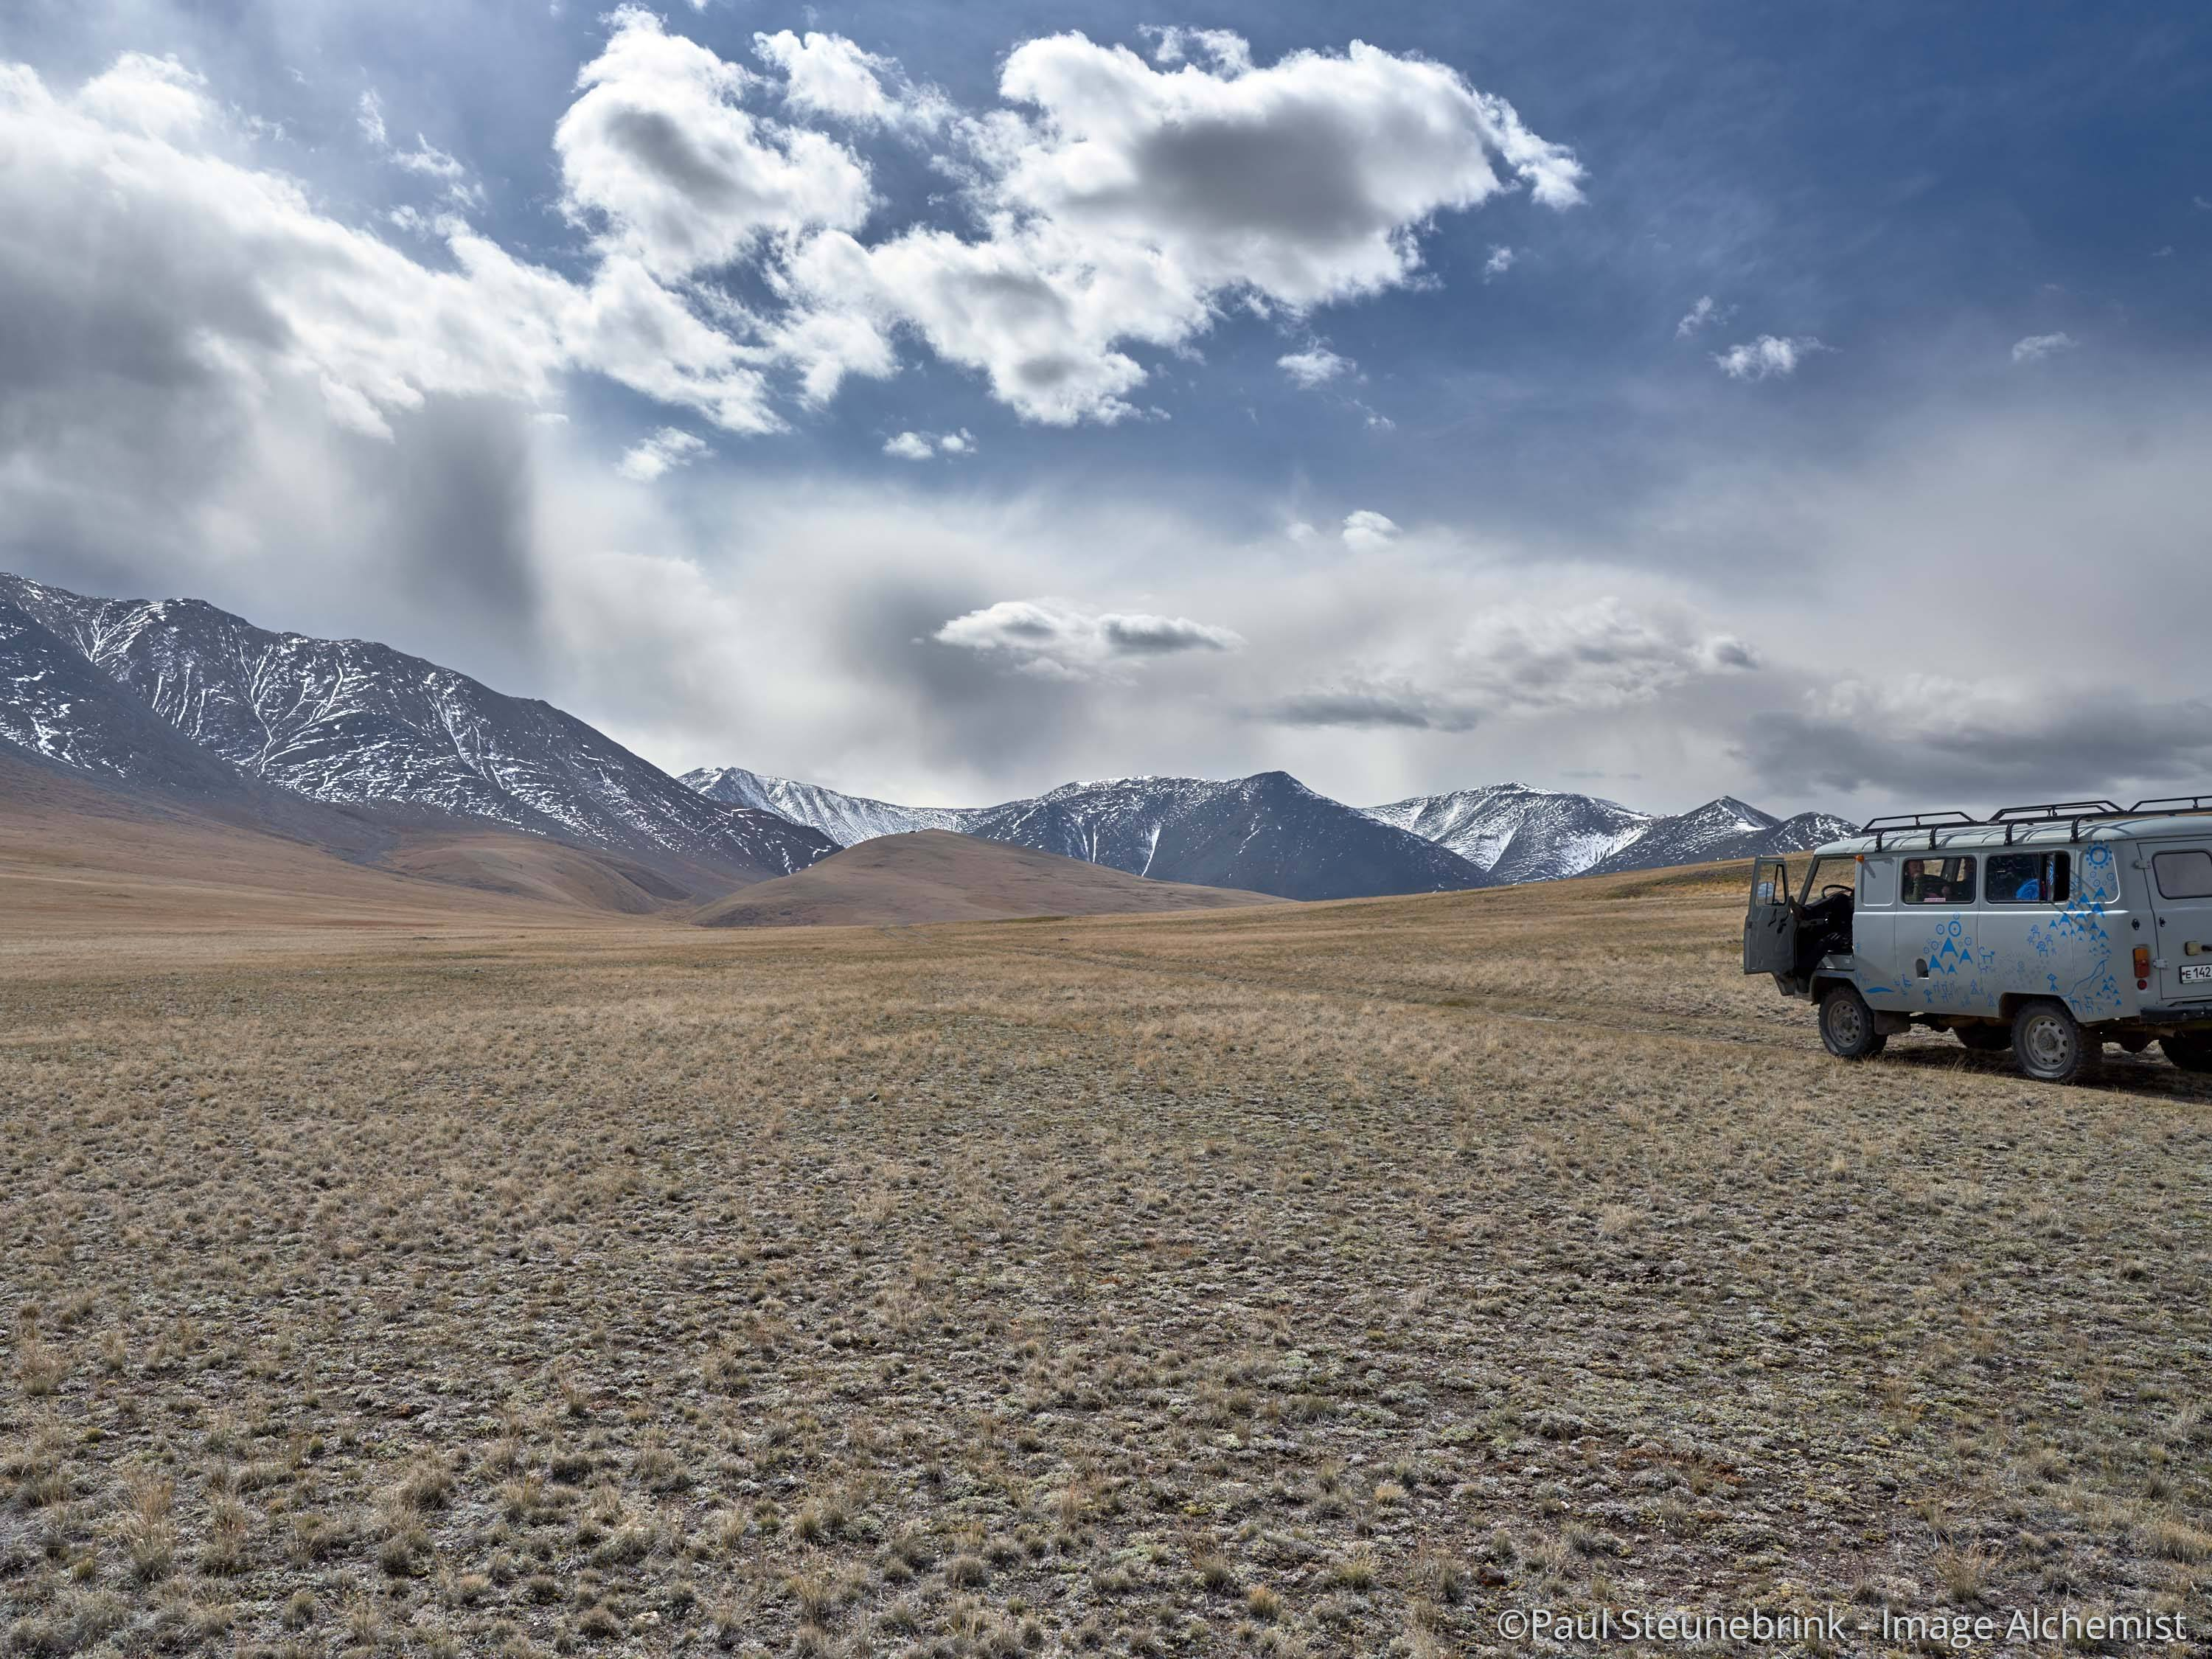 capture one 12.1 review, crossing the steppe, altai, Siberia, russia